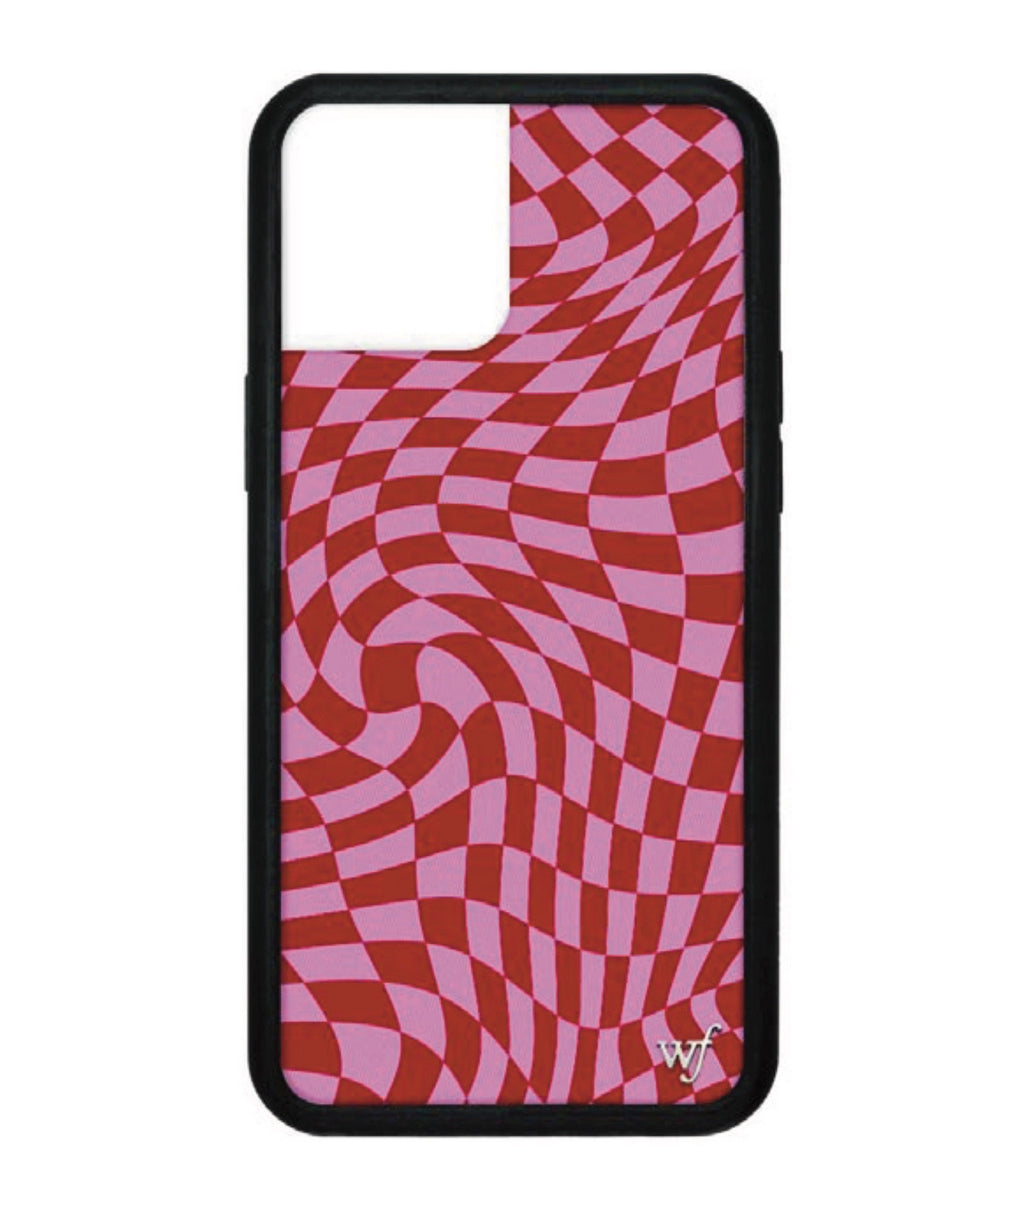 Wildflower Phone Case Pink Crazy Checkers